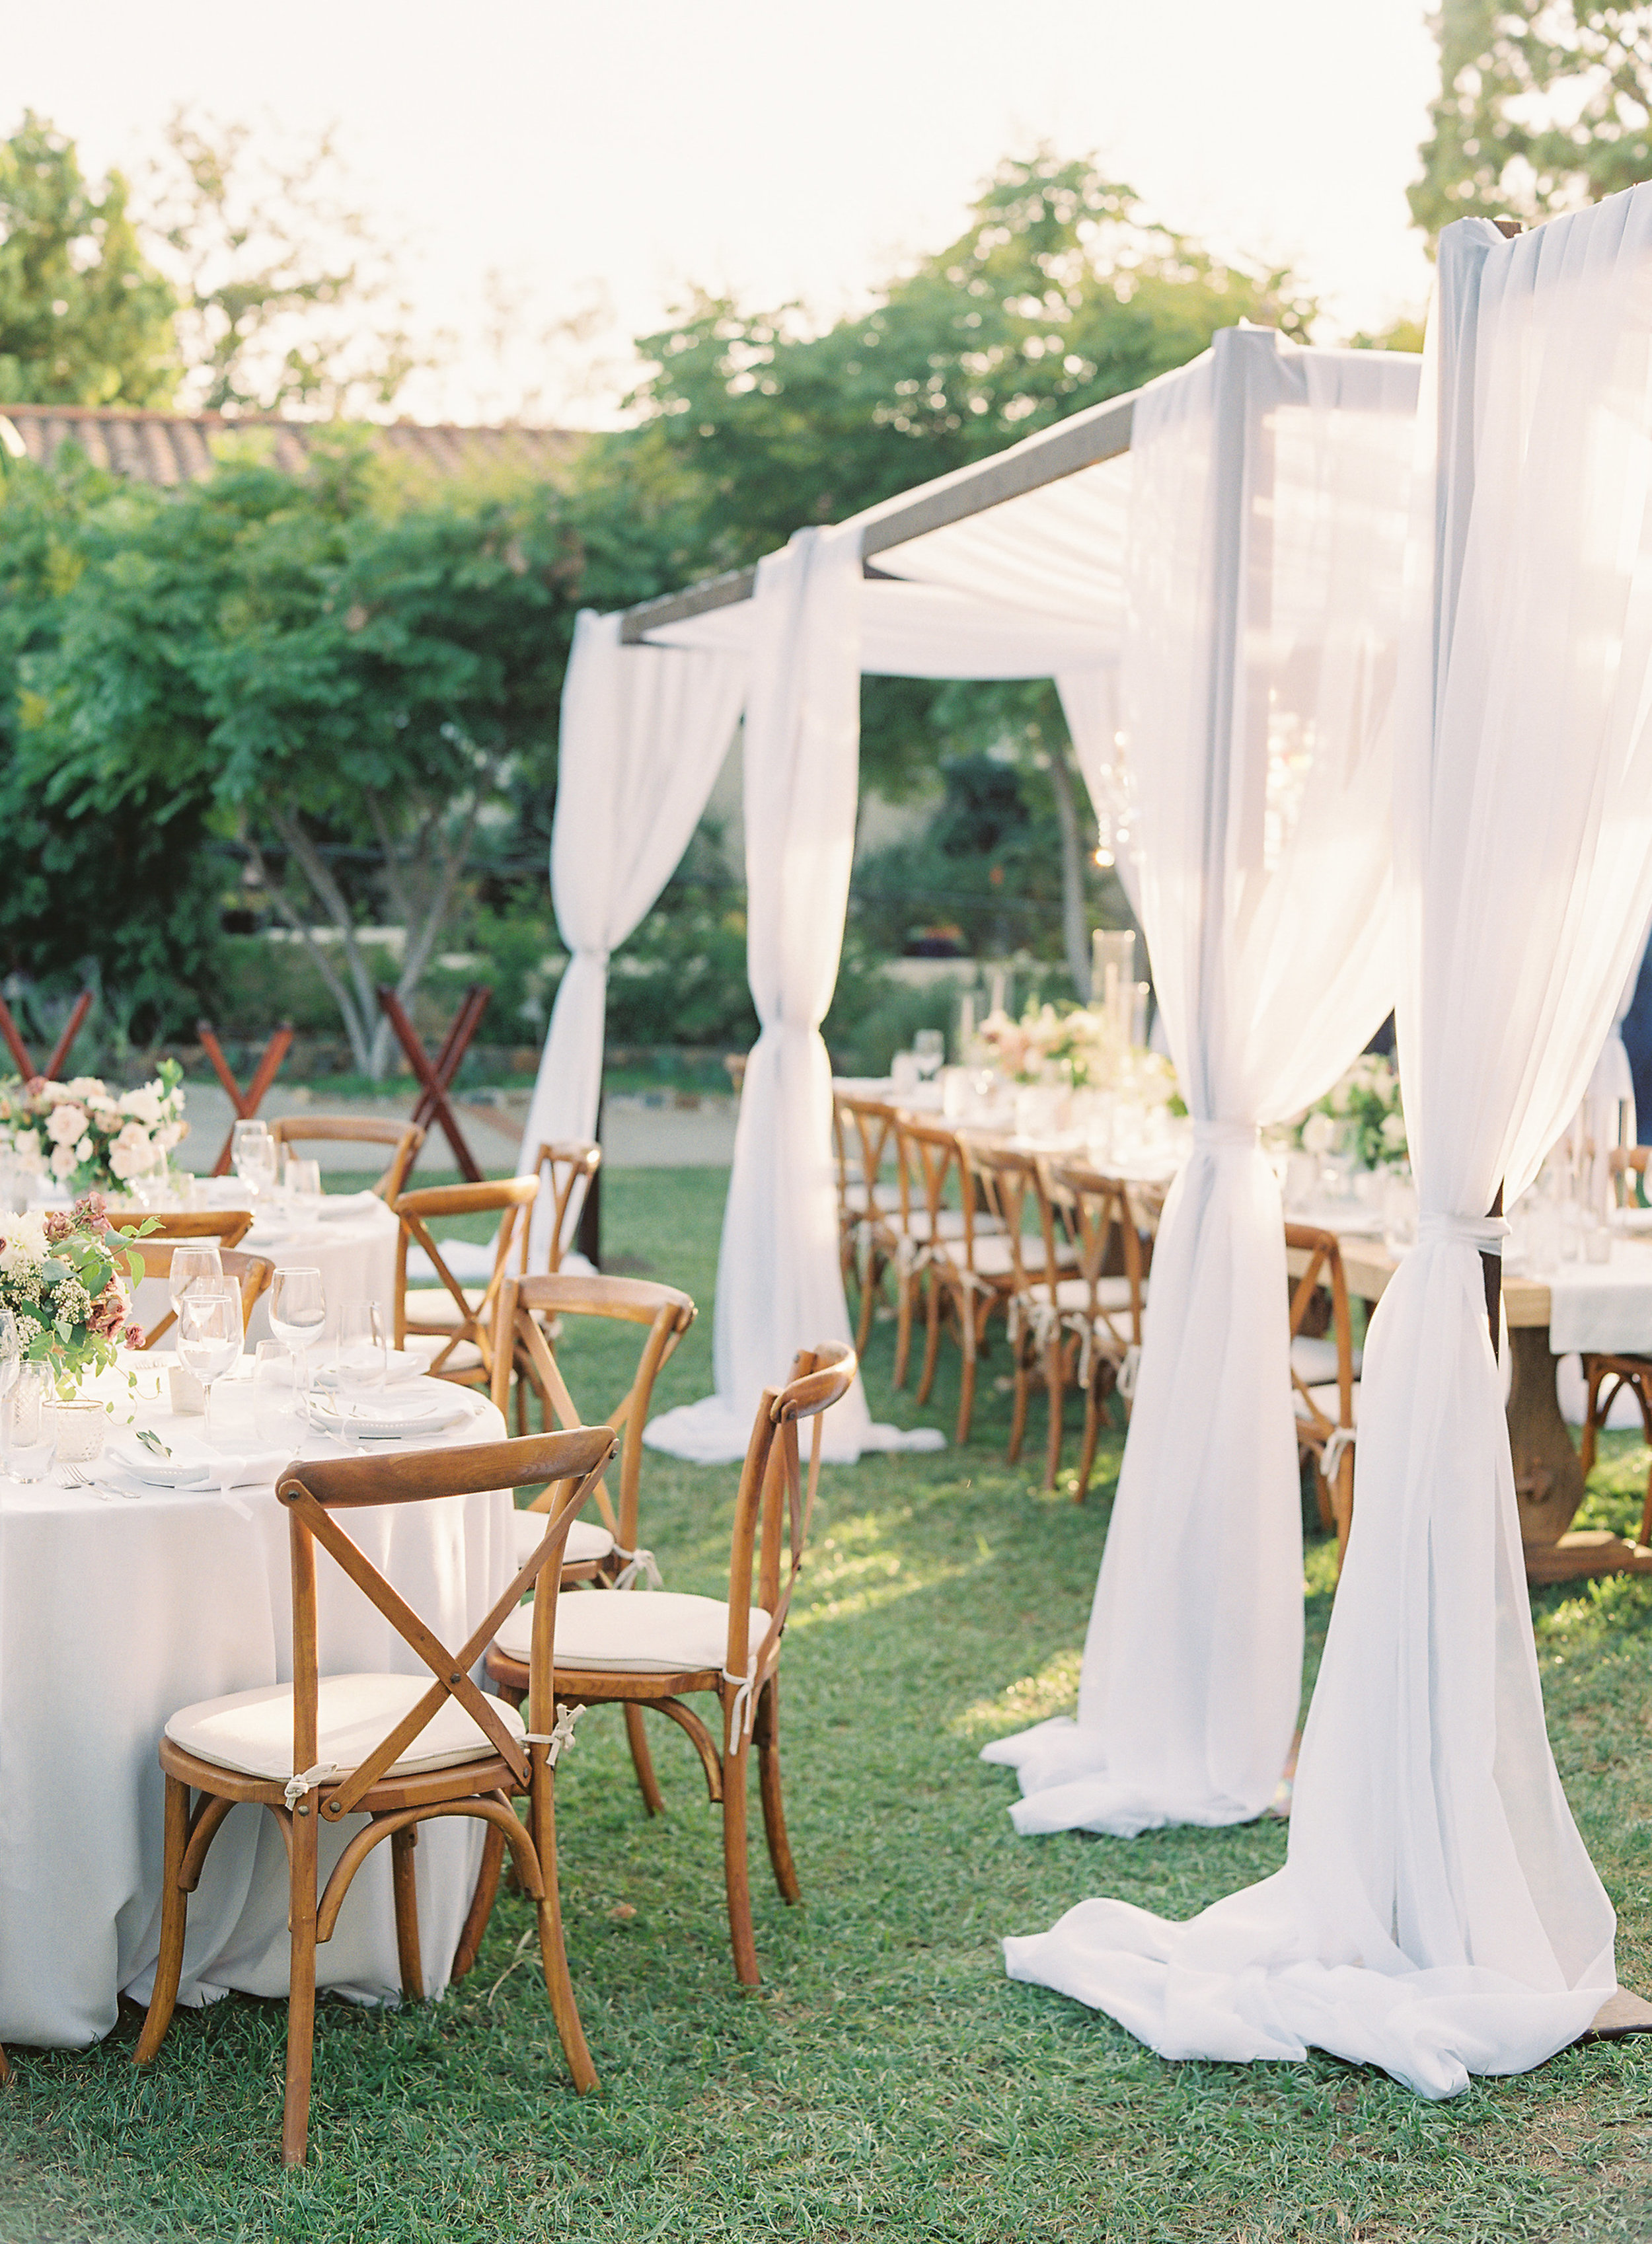 Inn-at-Rancho-Santa-Fe-Wedding-Film.jpg